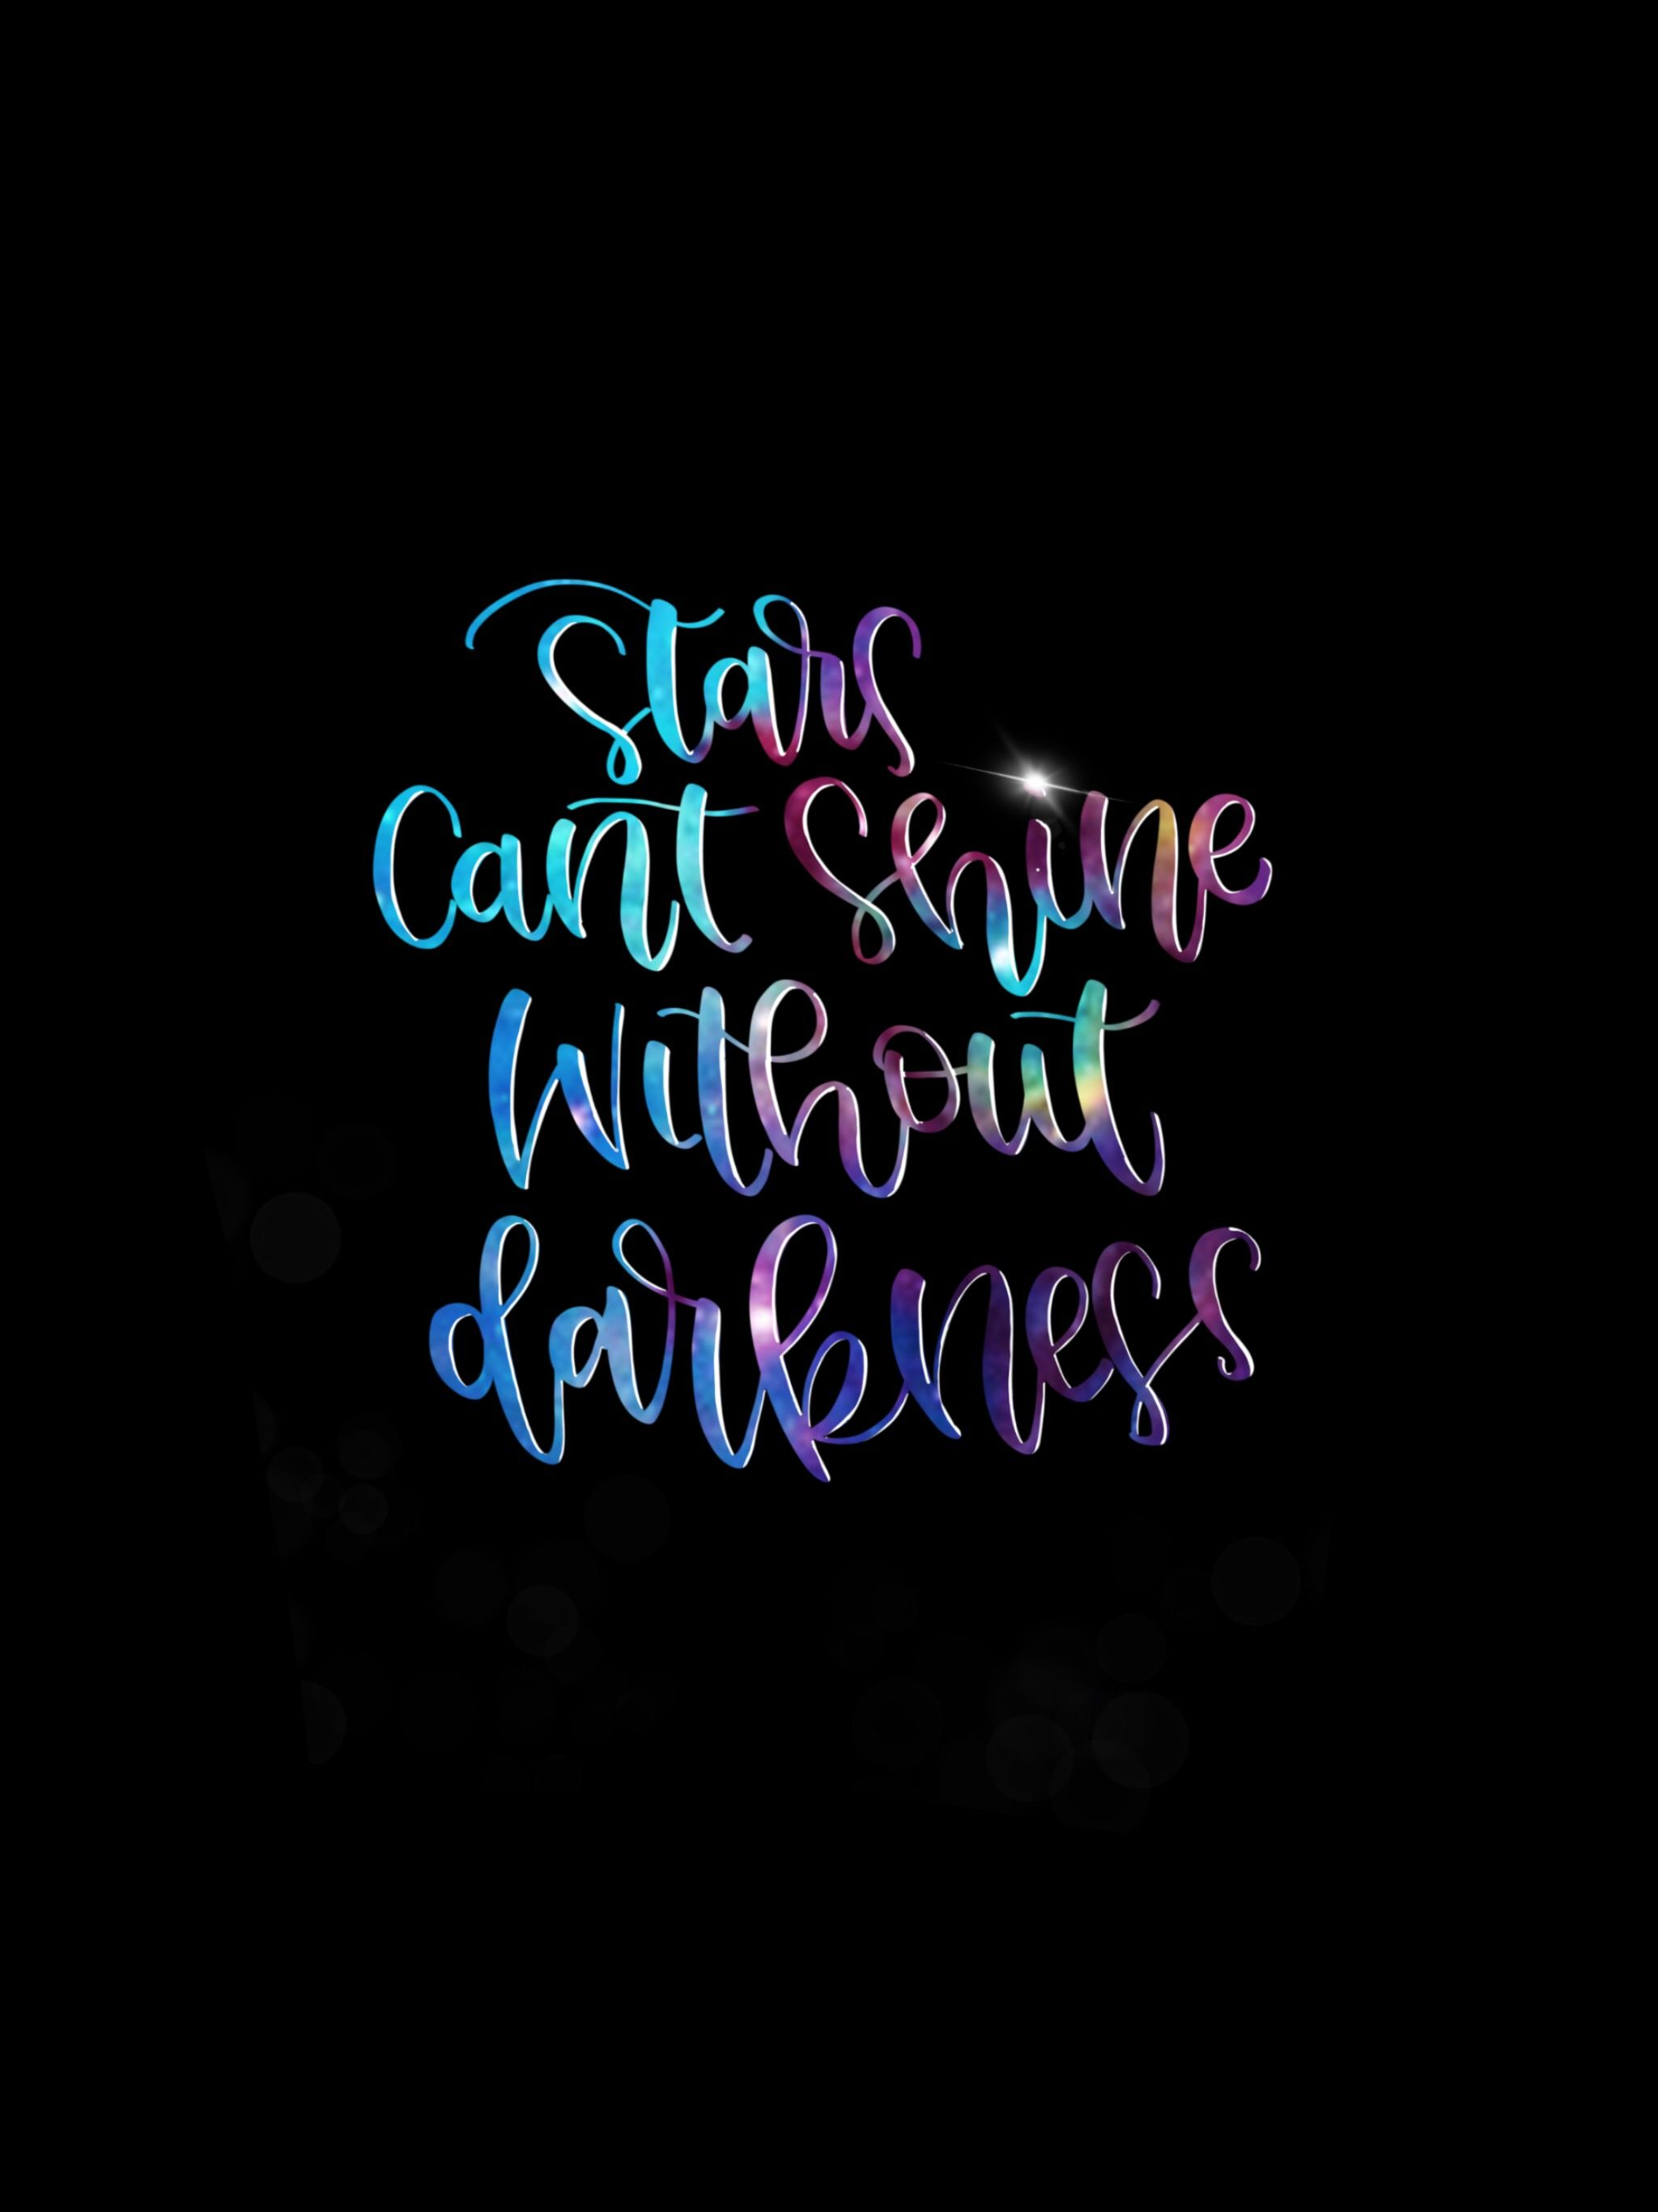 Stars Cant Shine Without Darkness Wallpaper Quotes